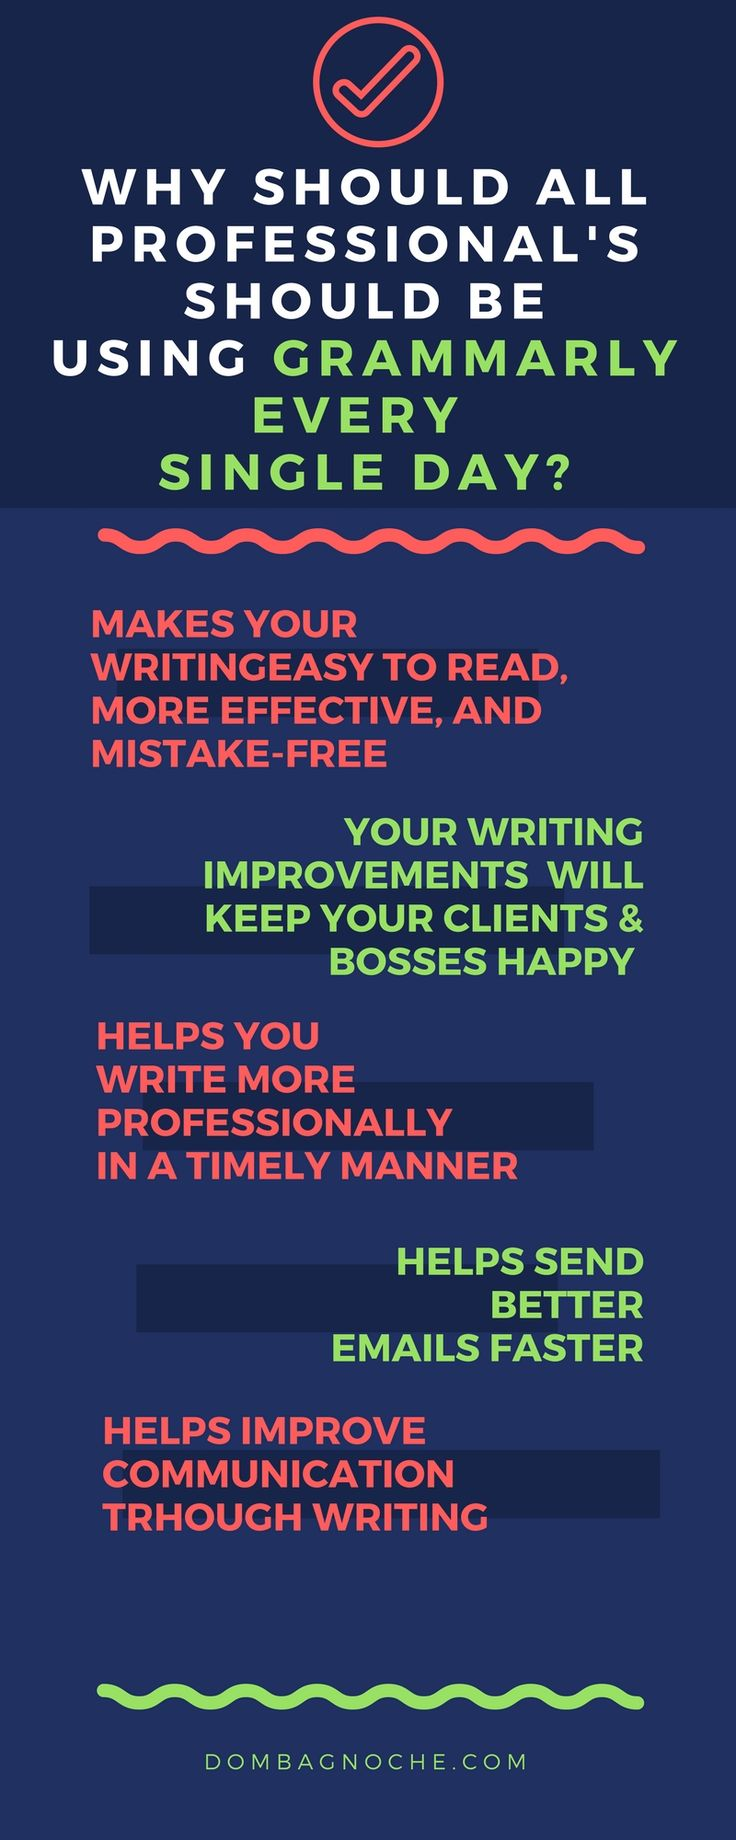 Grammarly is a software that ensures everything you write